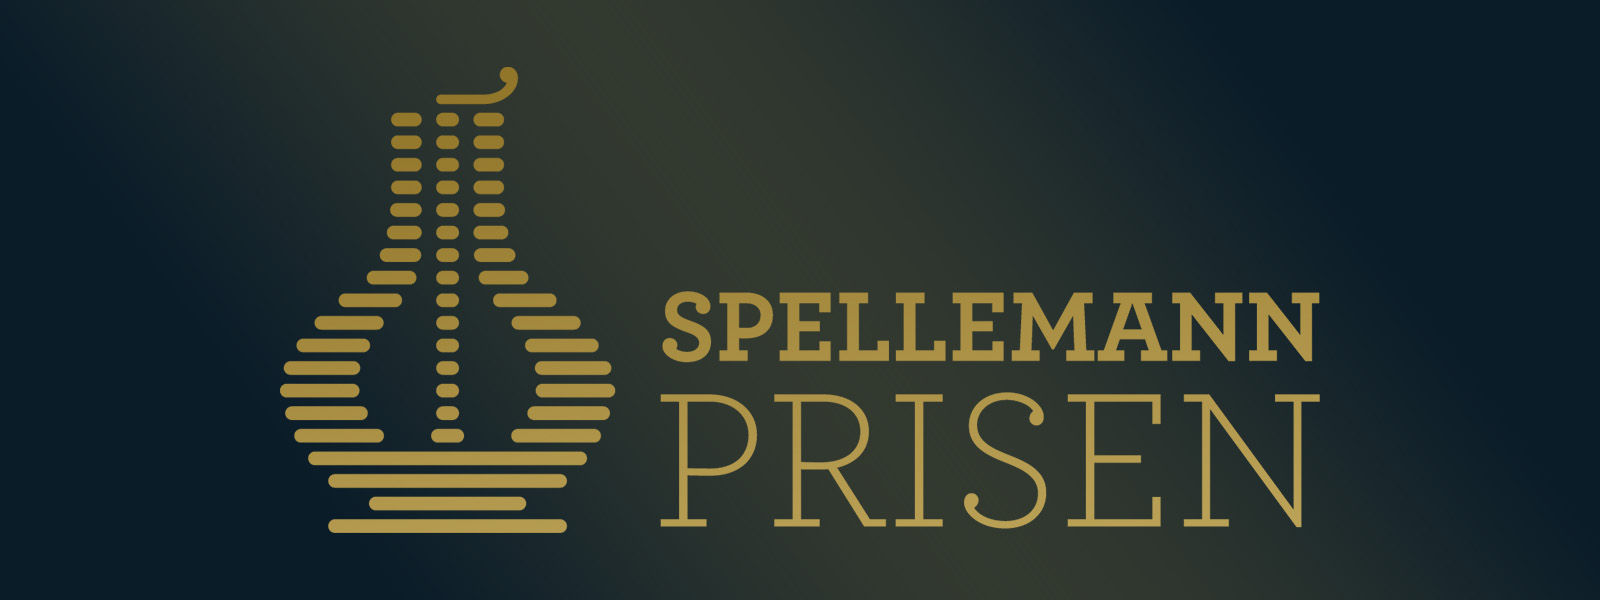 Norwegian Spellemann Awards Announce Nominees